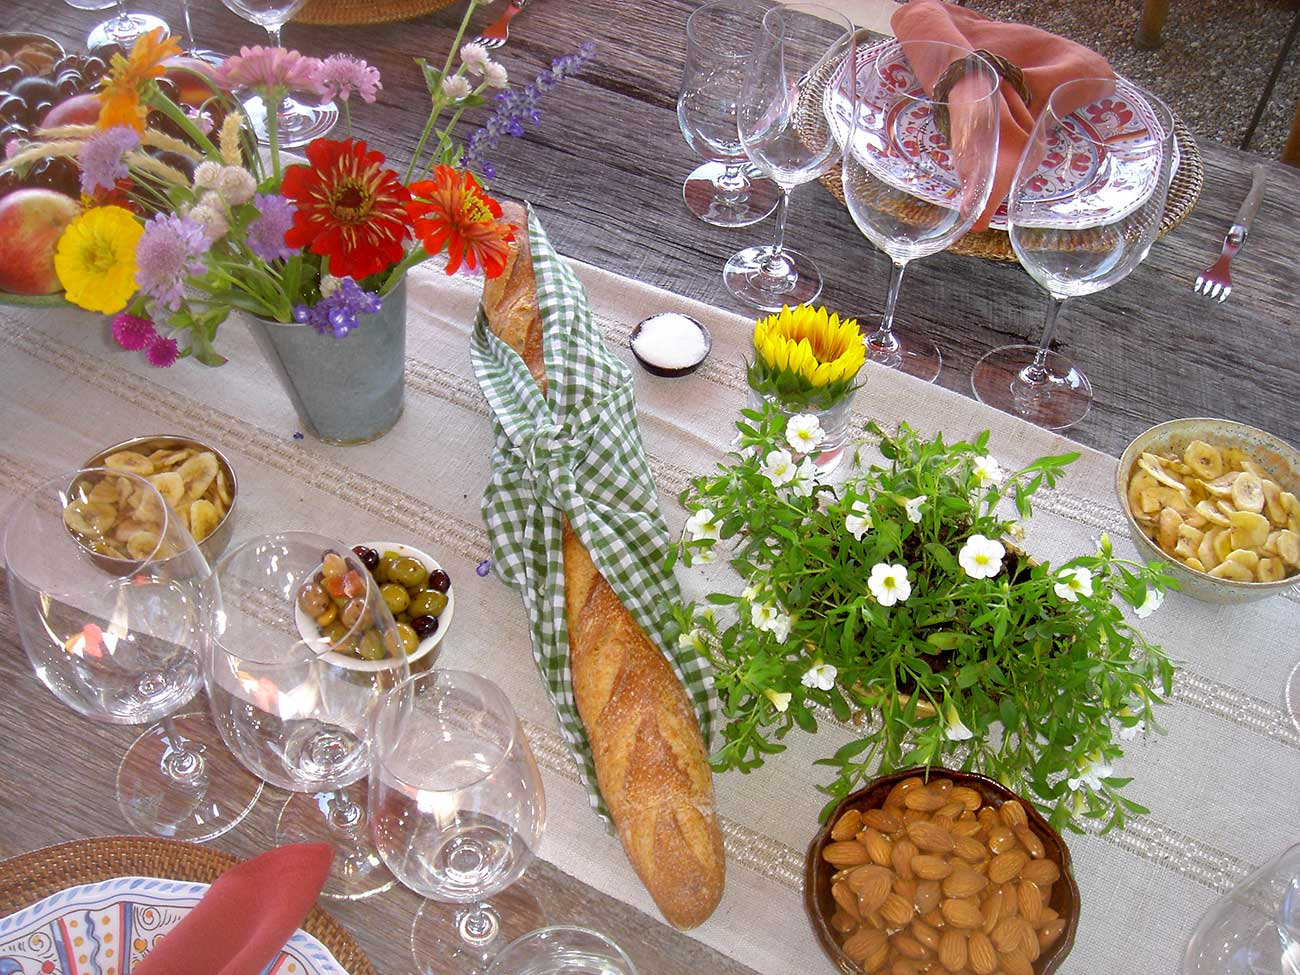 Tabletop design with bread, wild flowers and crystal